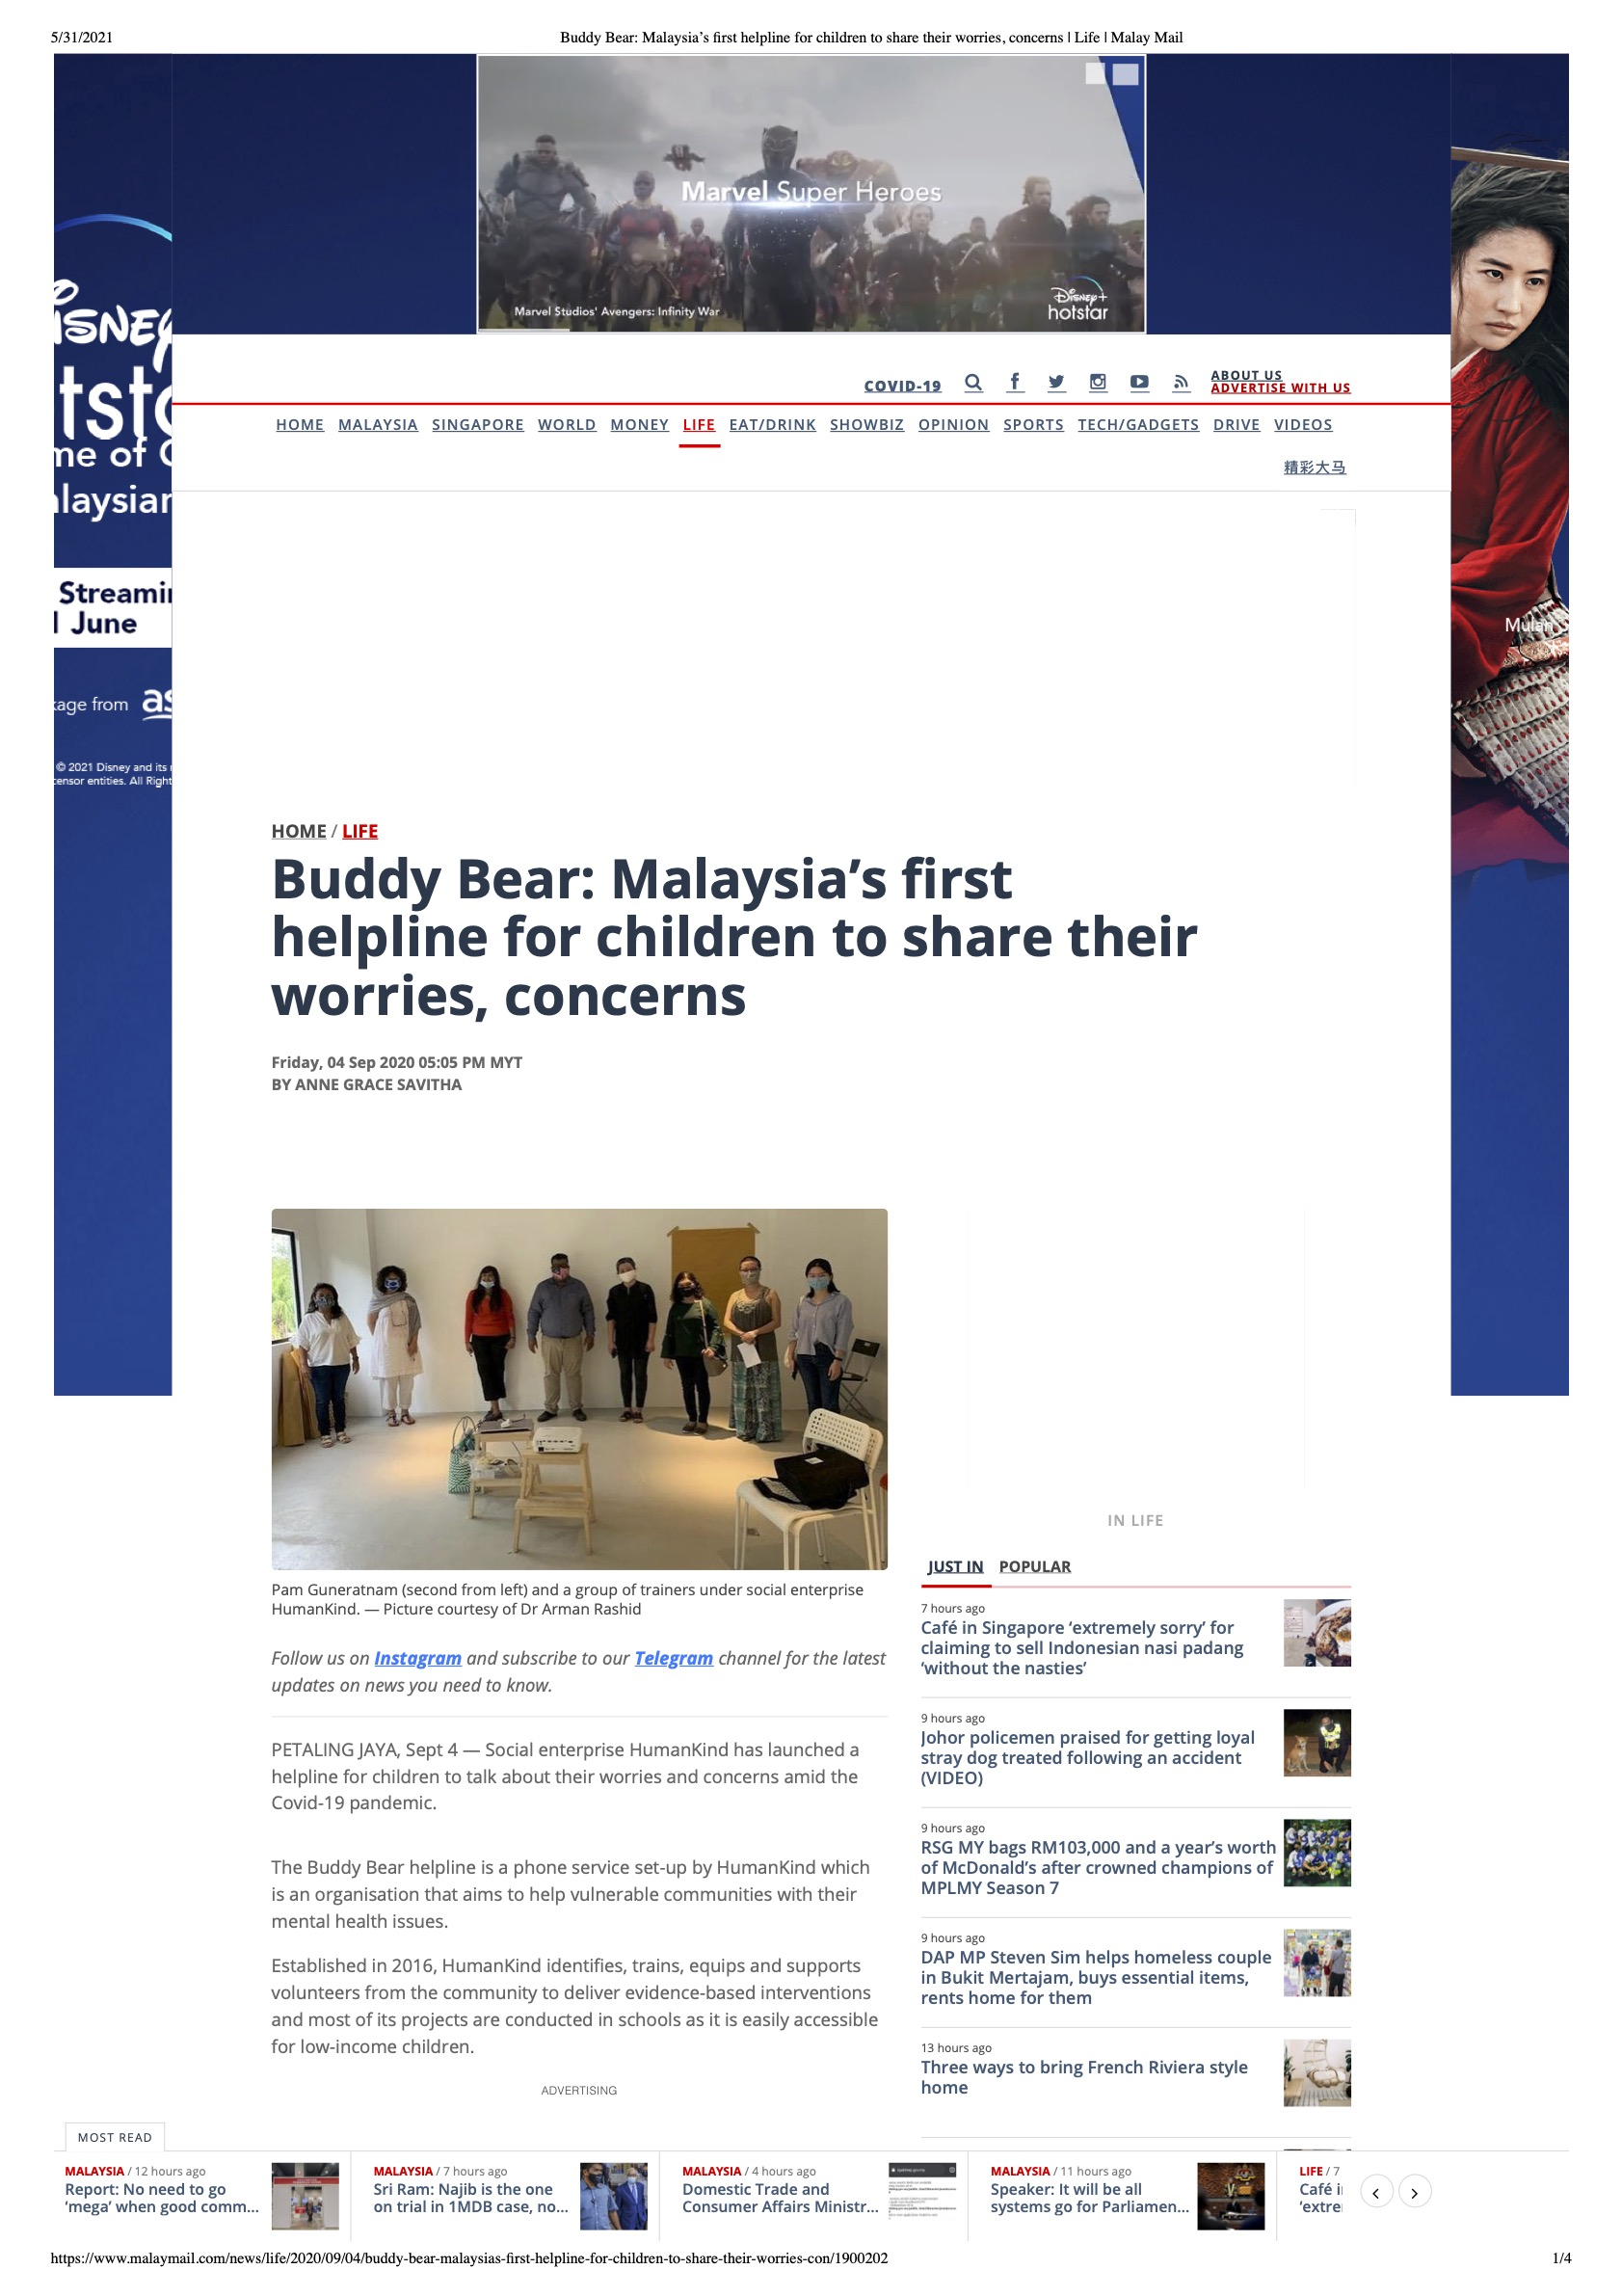 Buddy bear  malaysia s first helpline for children to share their worries  concerns   life   malay mail